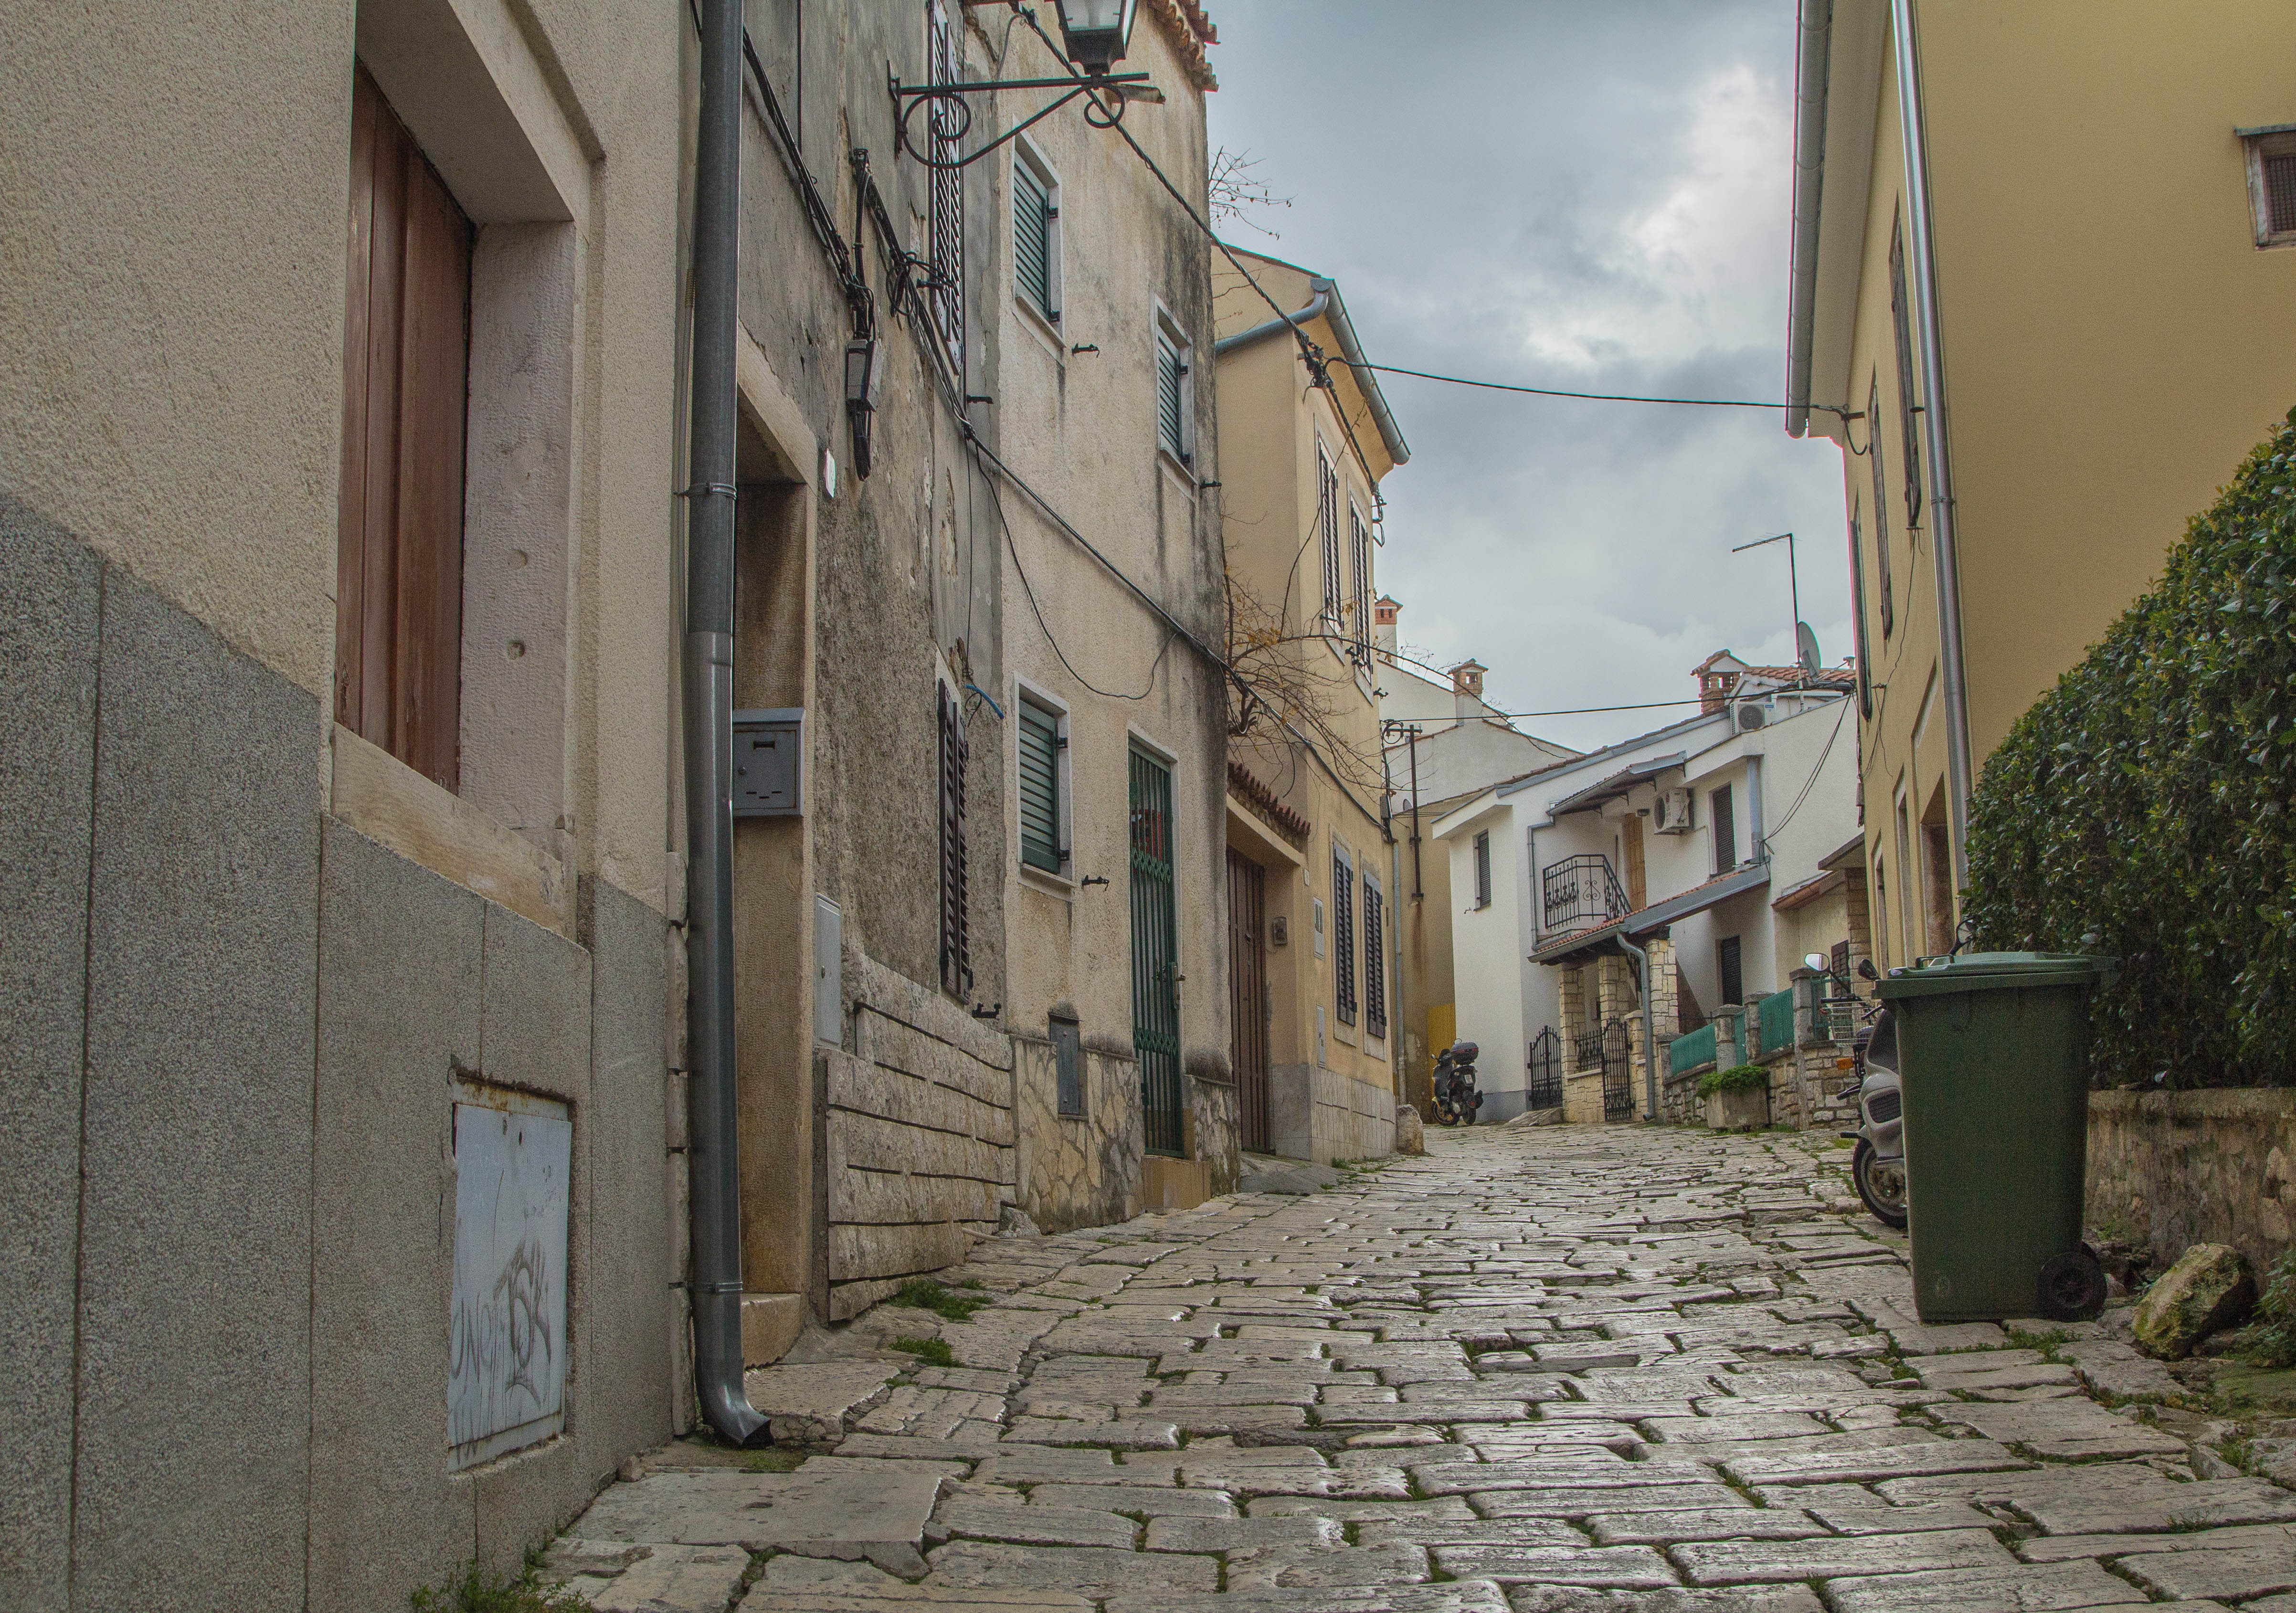 WALK THROUGH OLDTOWN STREETS TO VISIT ST. EUFEMIA CHURCH IN ROVINJ